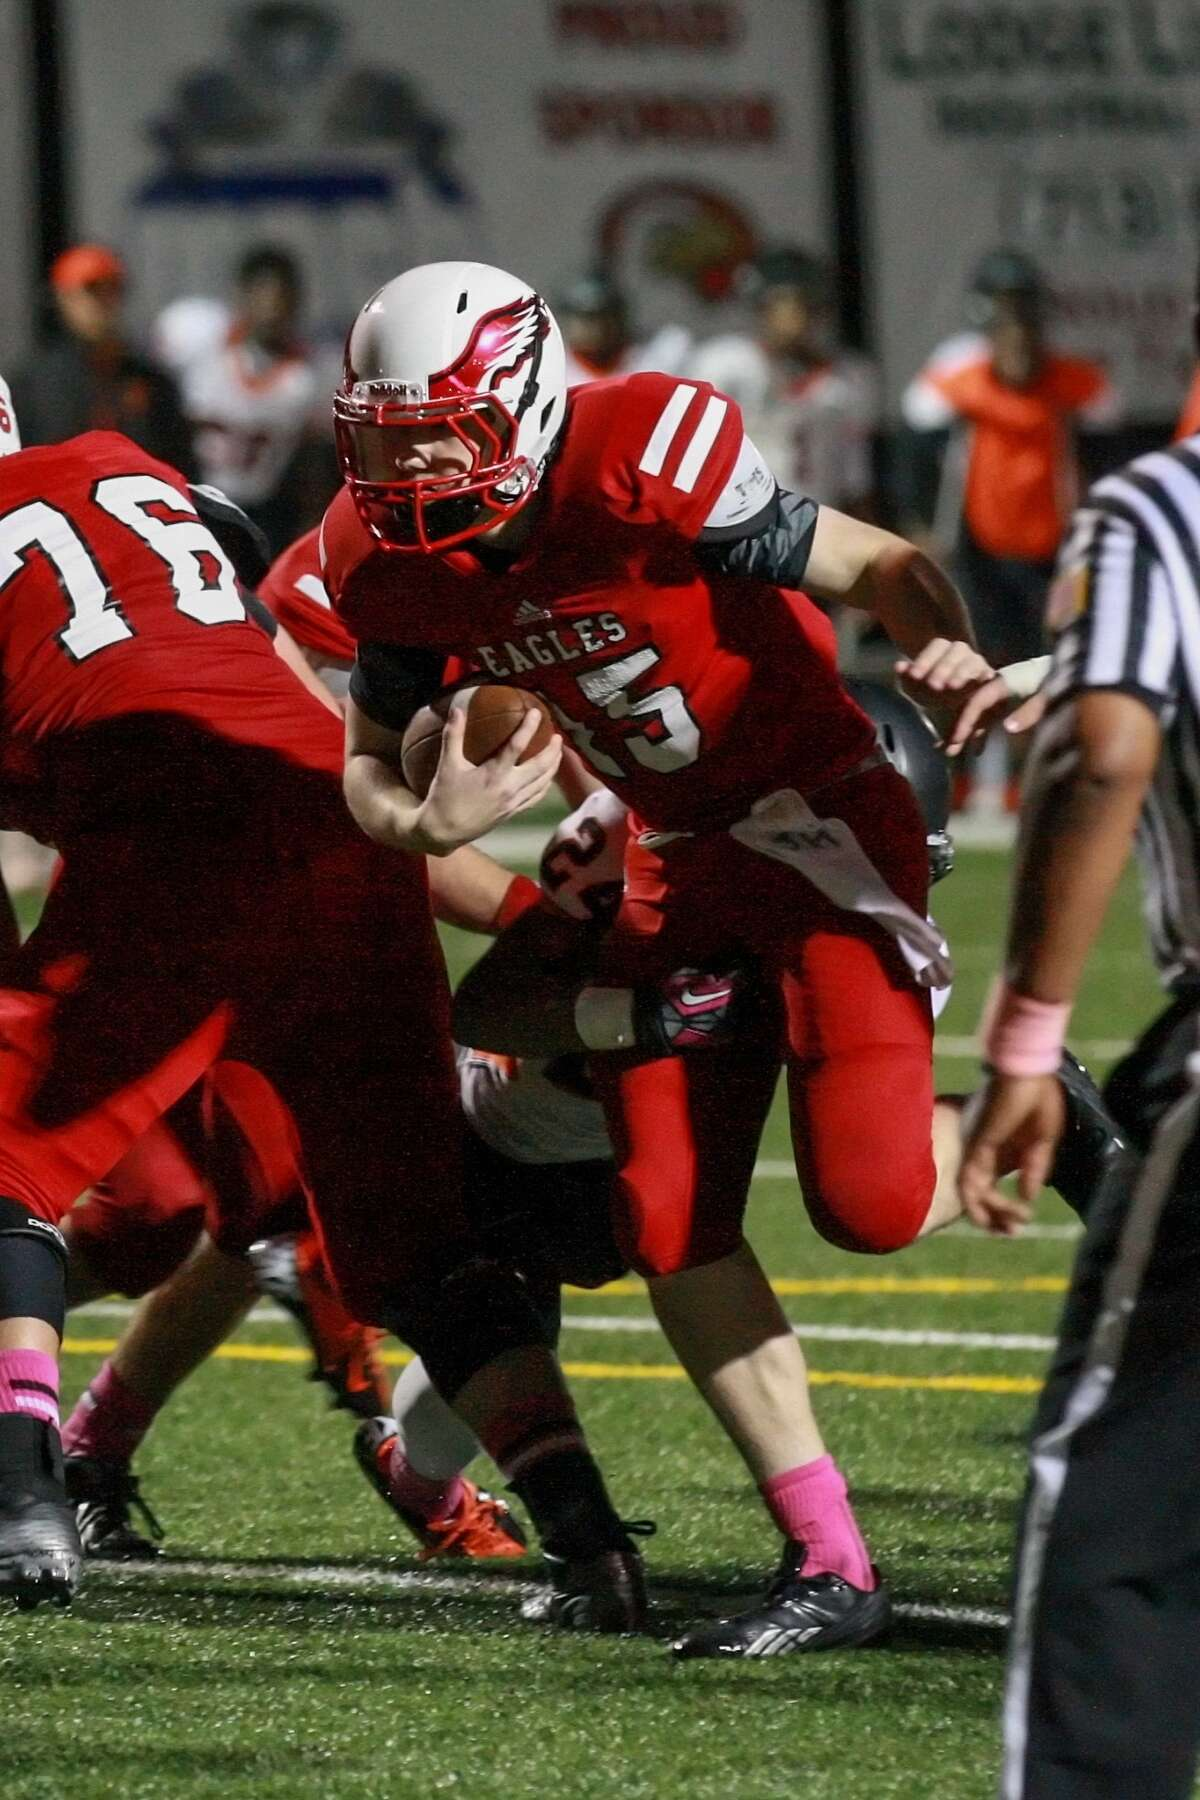 Michael Keating of St. Thomas runs the ball up the middle for a touchdown in the win over league rival St. Pius.